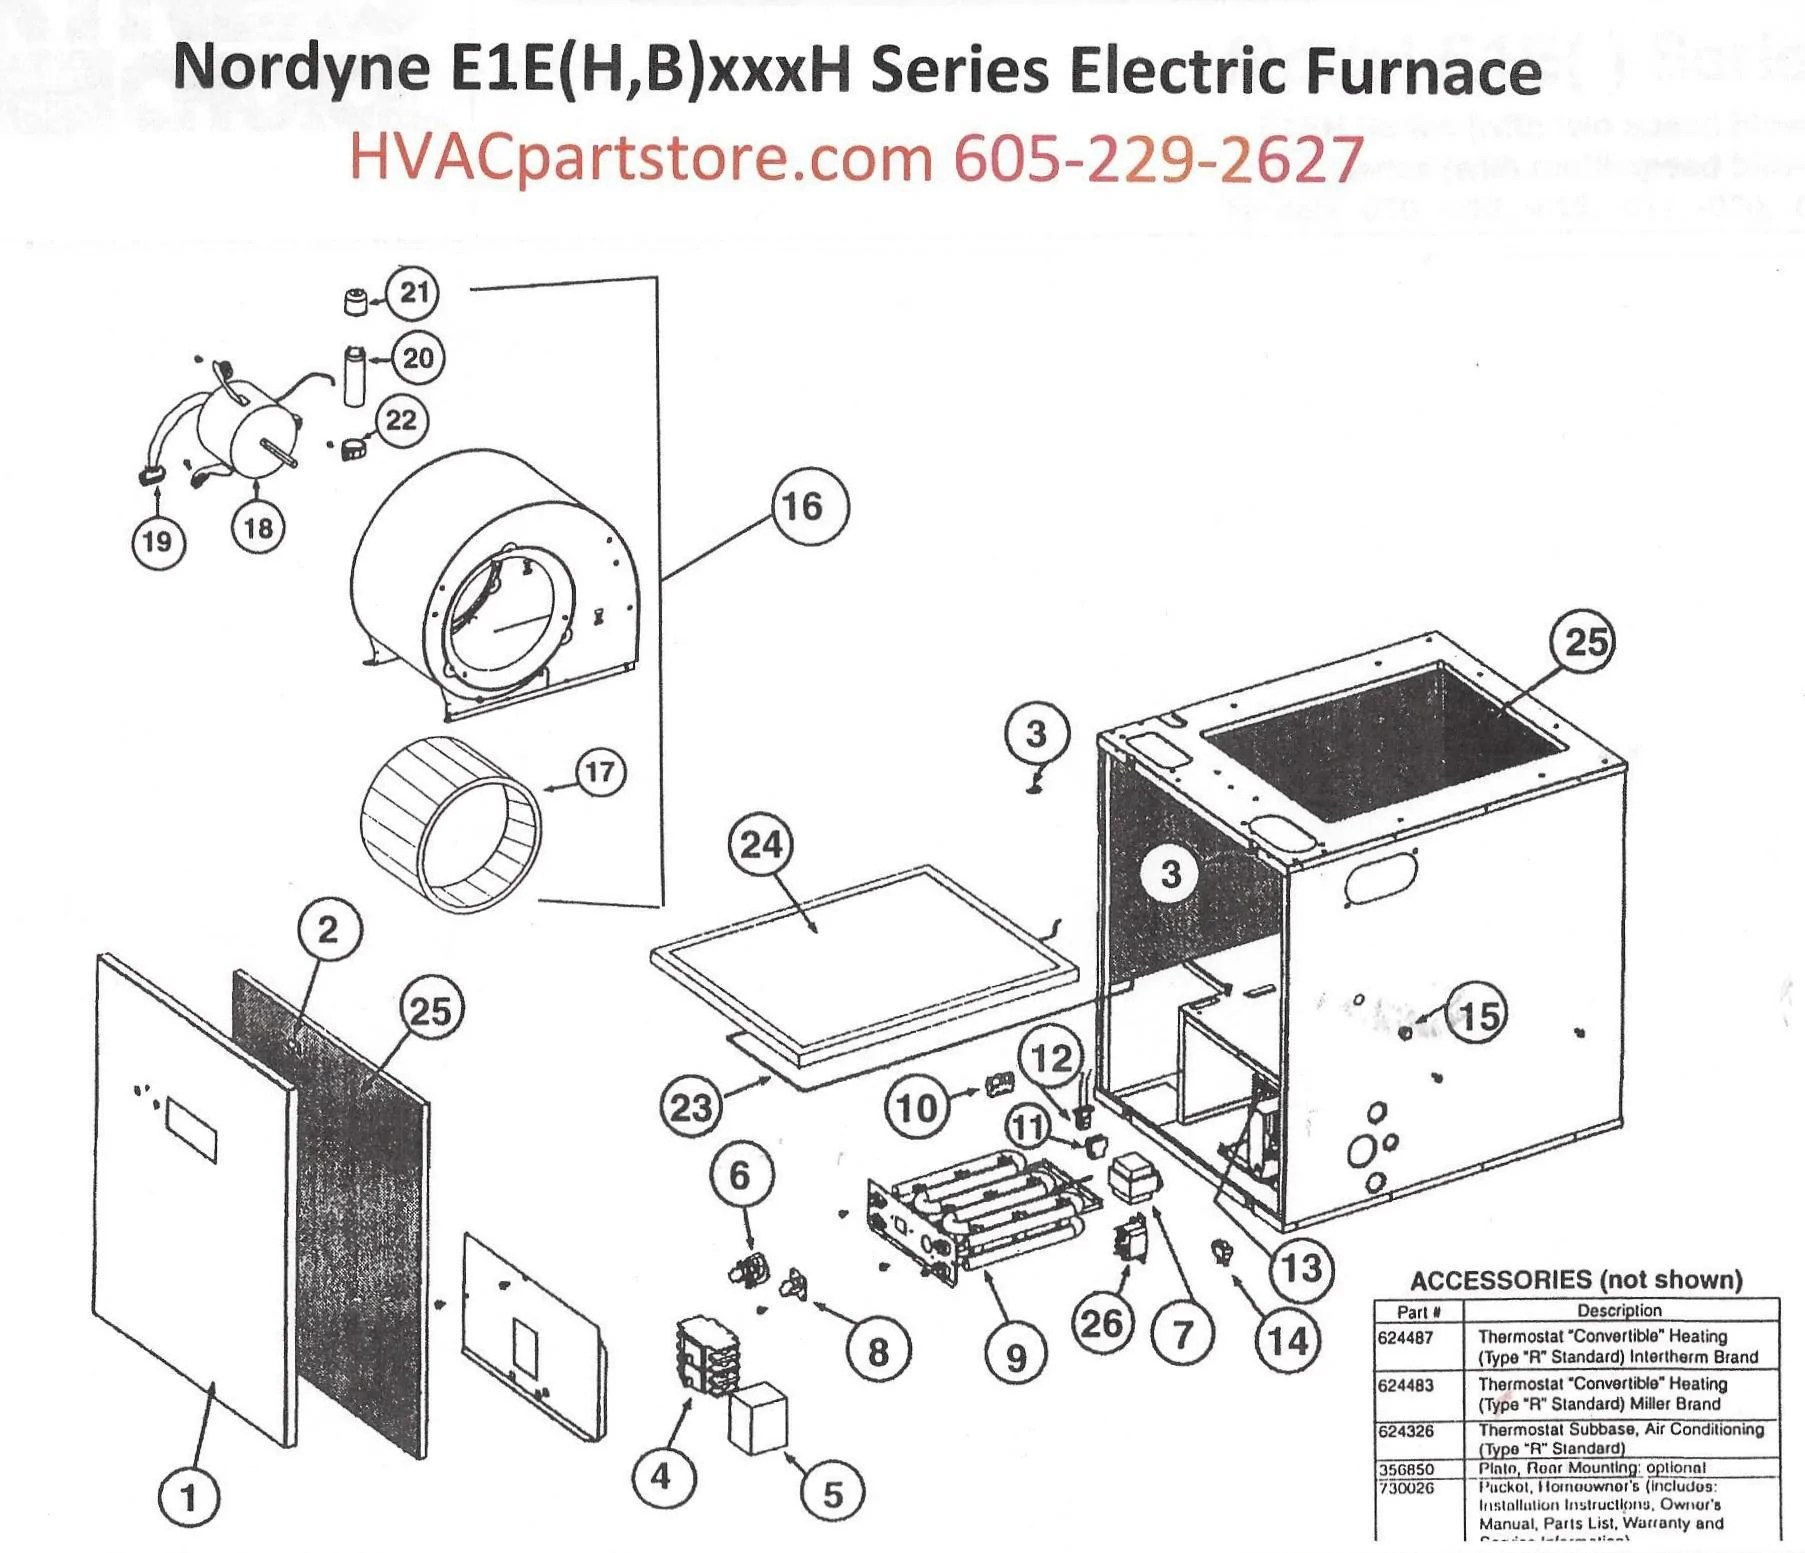 click here to view a parts listing for the e1eh012h which includes partial wiring diagrams that [ 1805 x 1553 Pixel ]